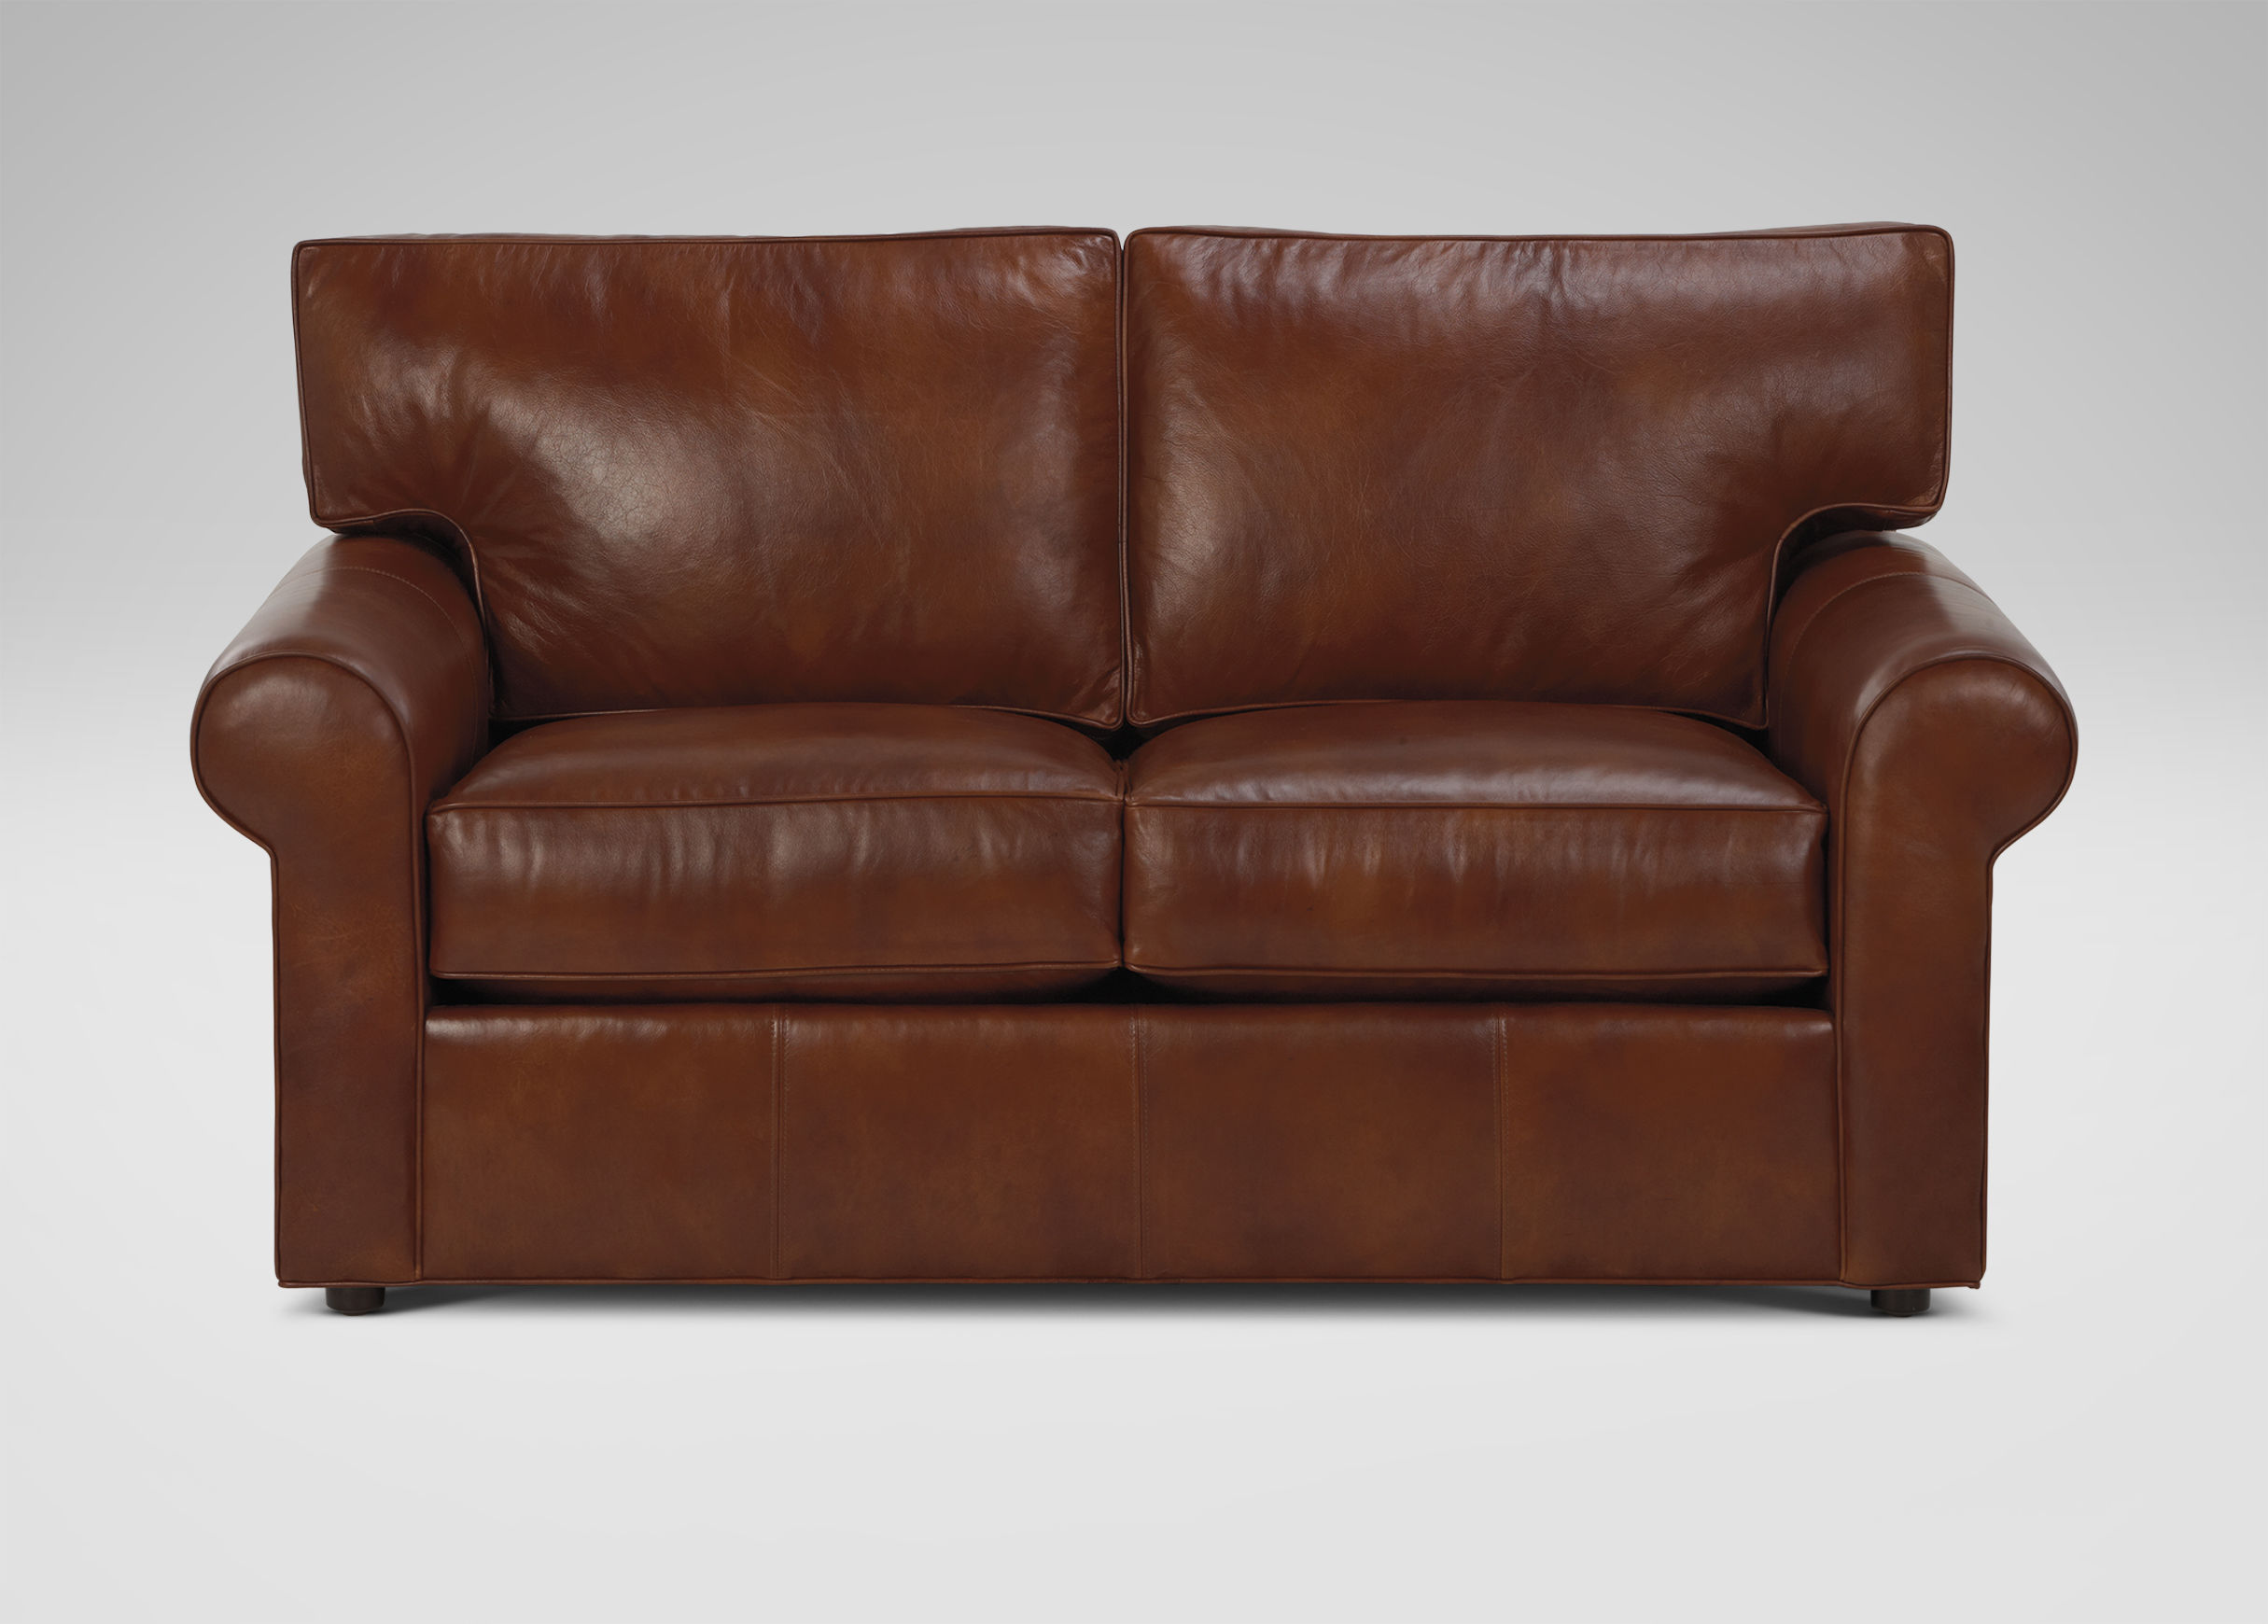 ethan allen leather chair antique rocking price guide furniture homesfeed